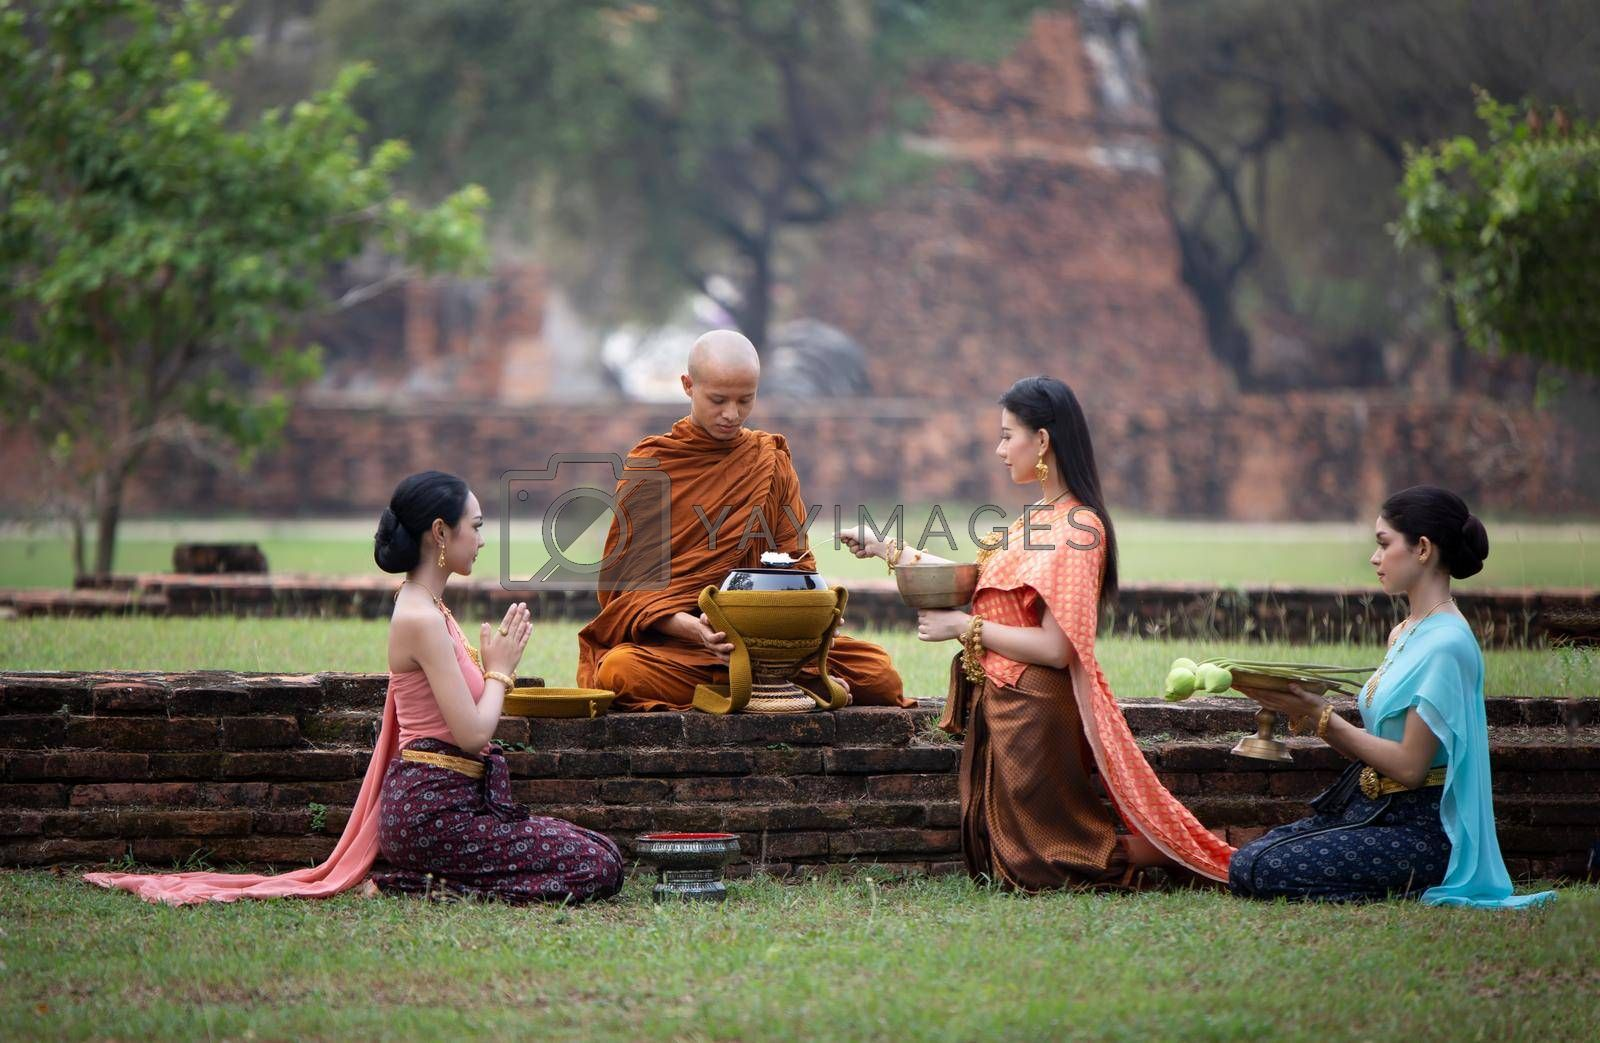 The women gave food to monk